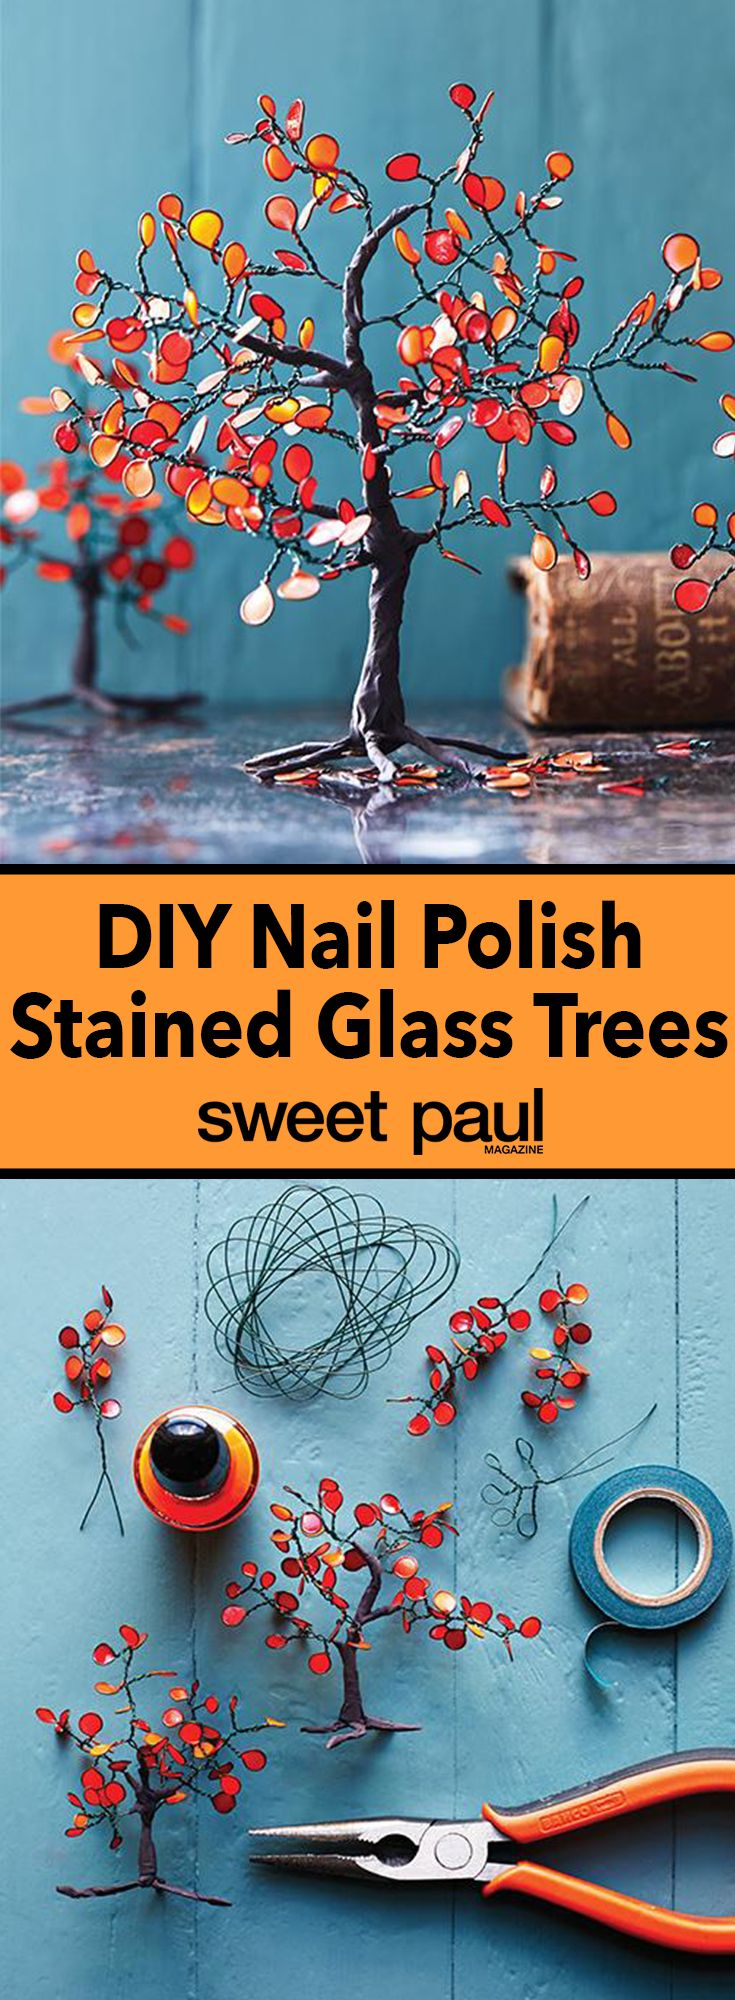 Glasmalerei Baum mit Nagellack gemacht | Sweet Paul Magazine – Craft Ideas